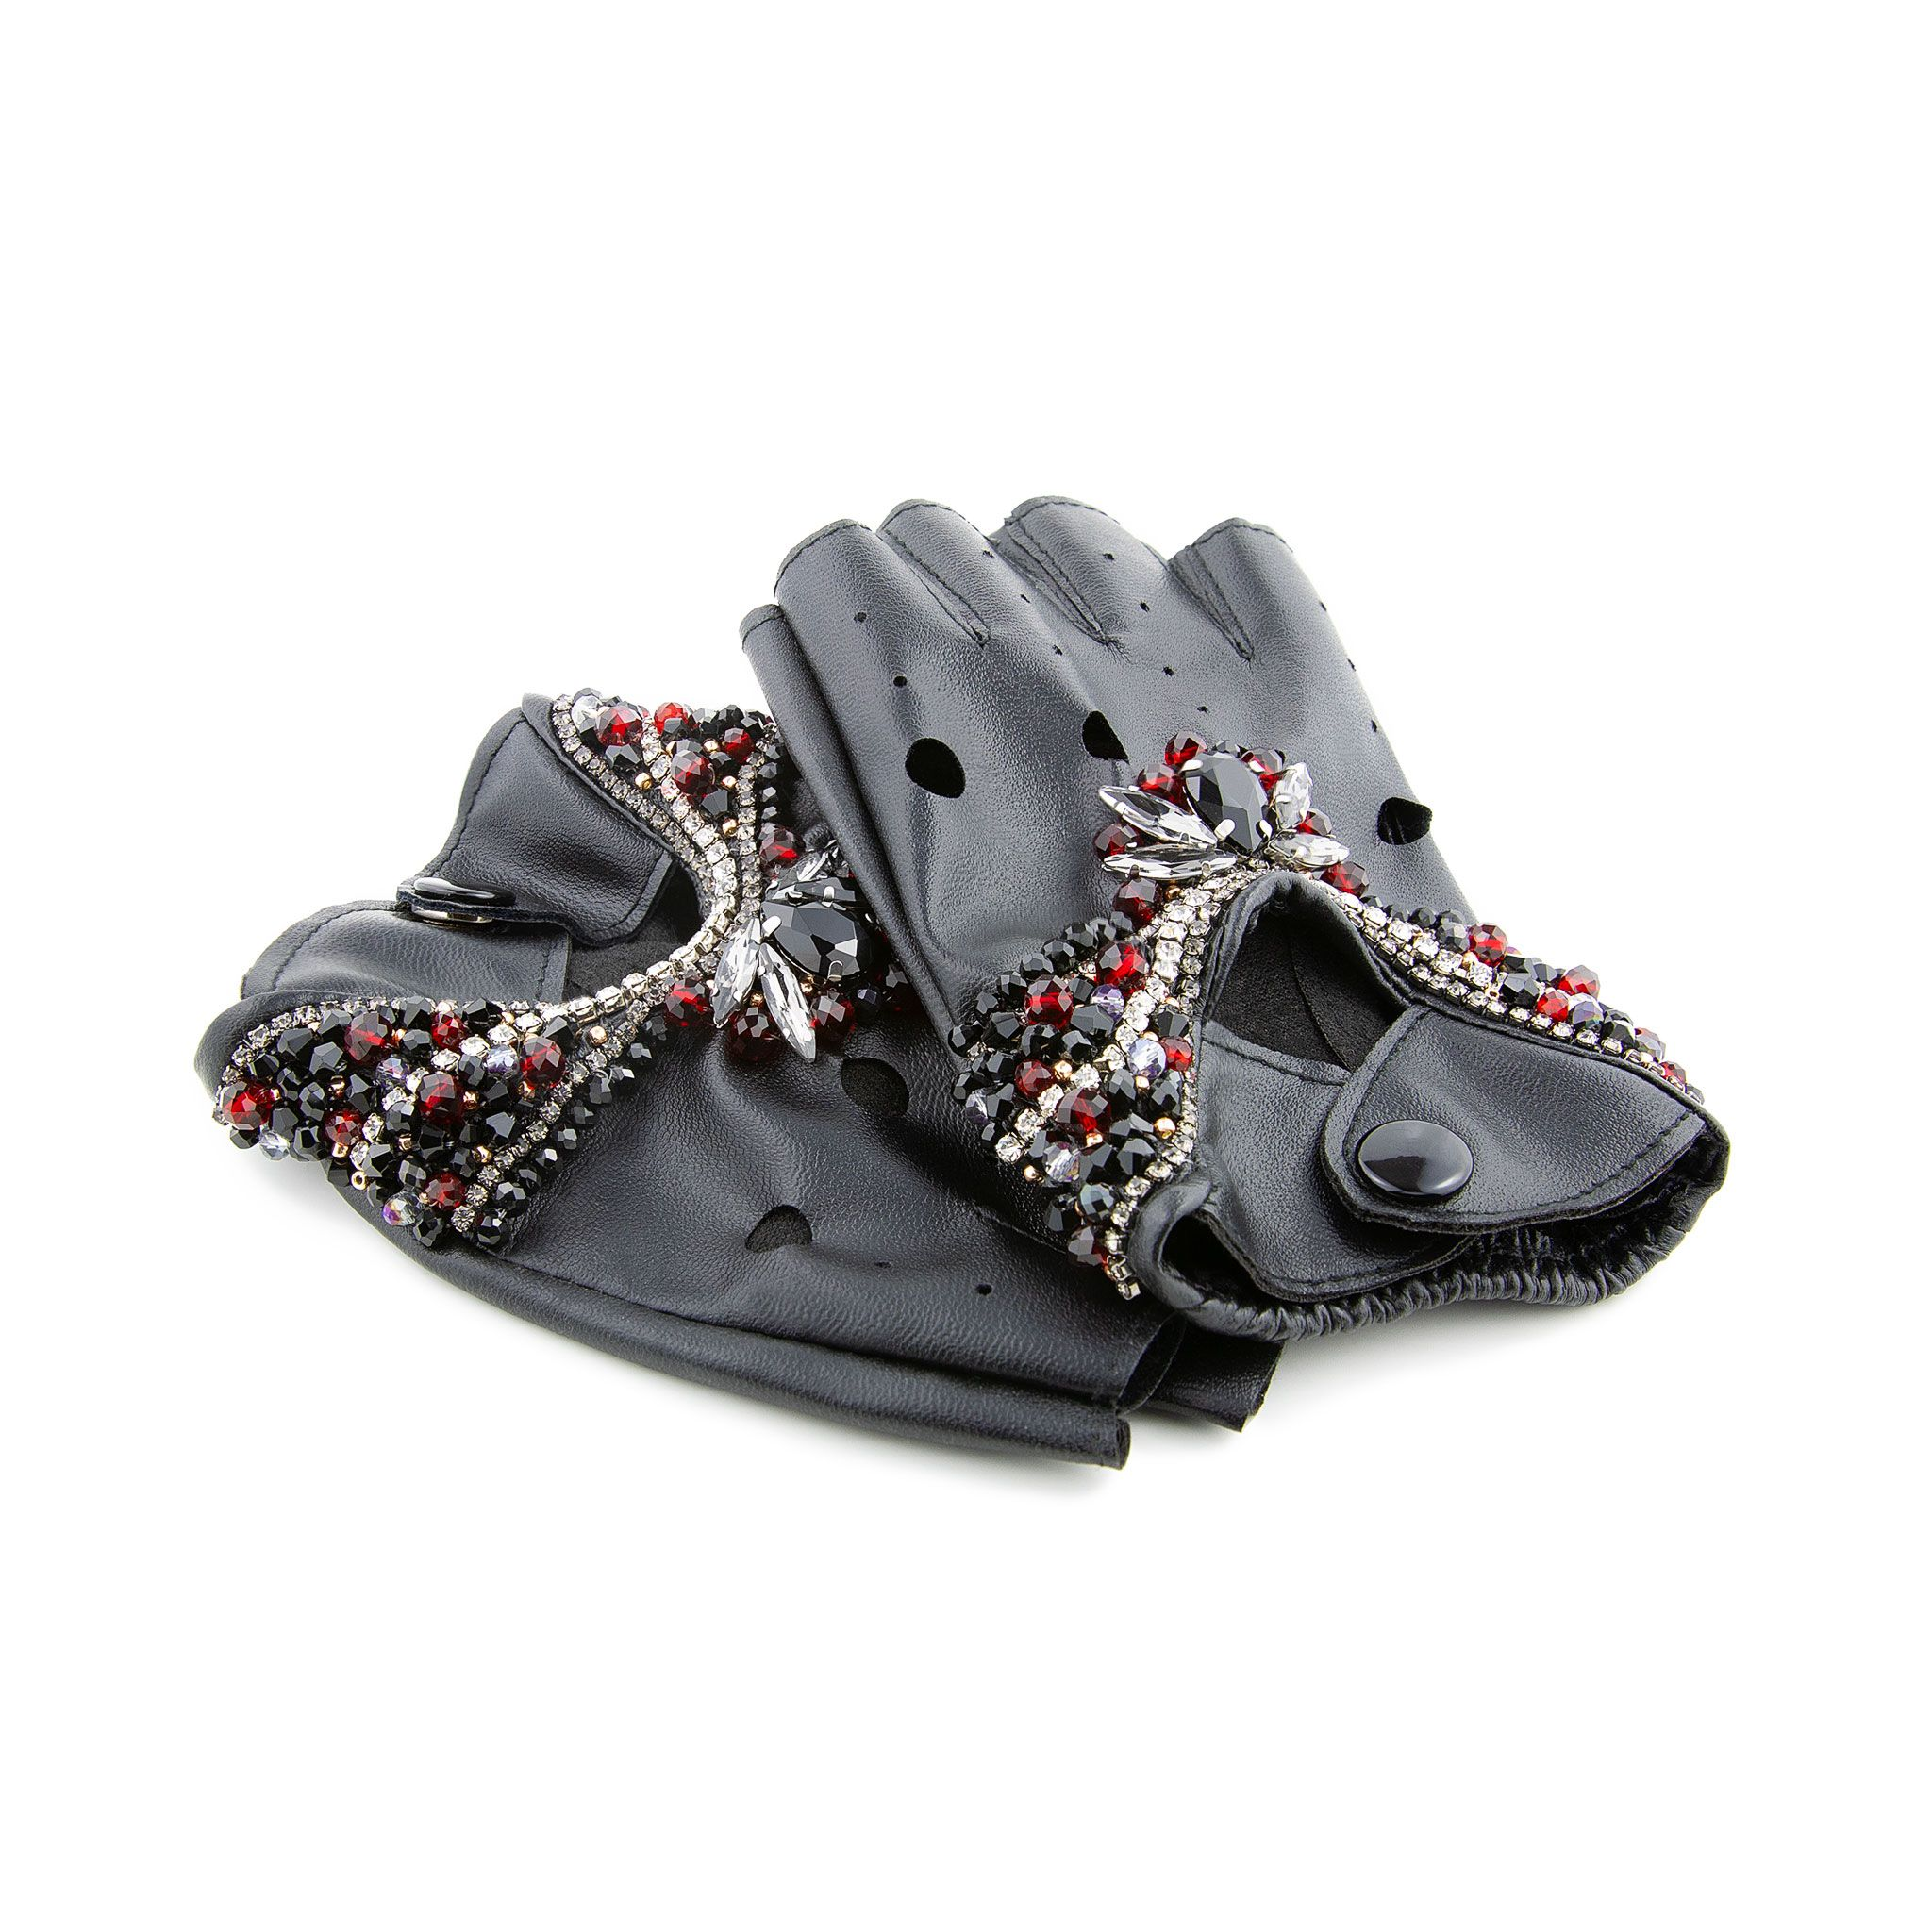 Fingerless PU Leather Gloves